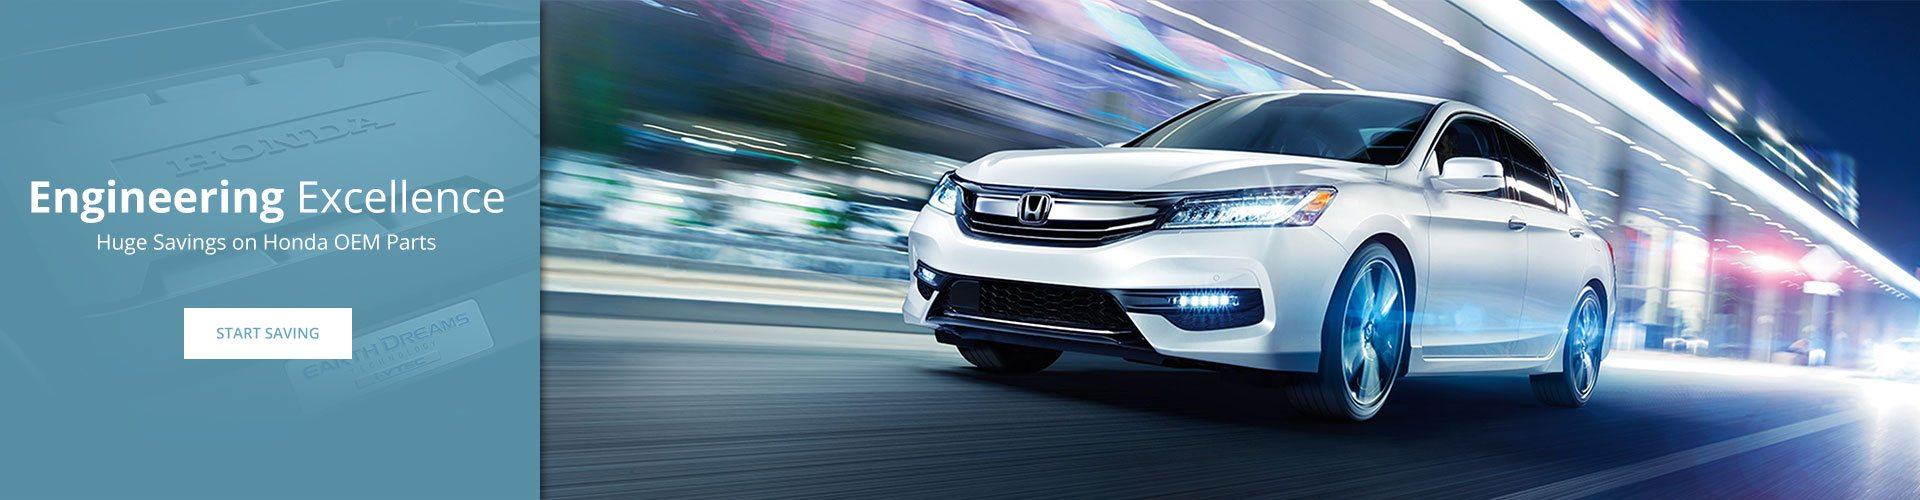 Save on Genuine Honda parts and accessories